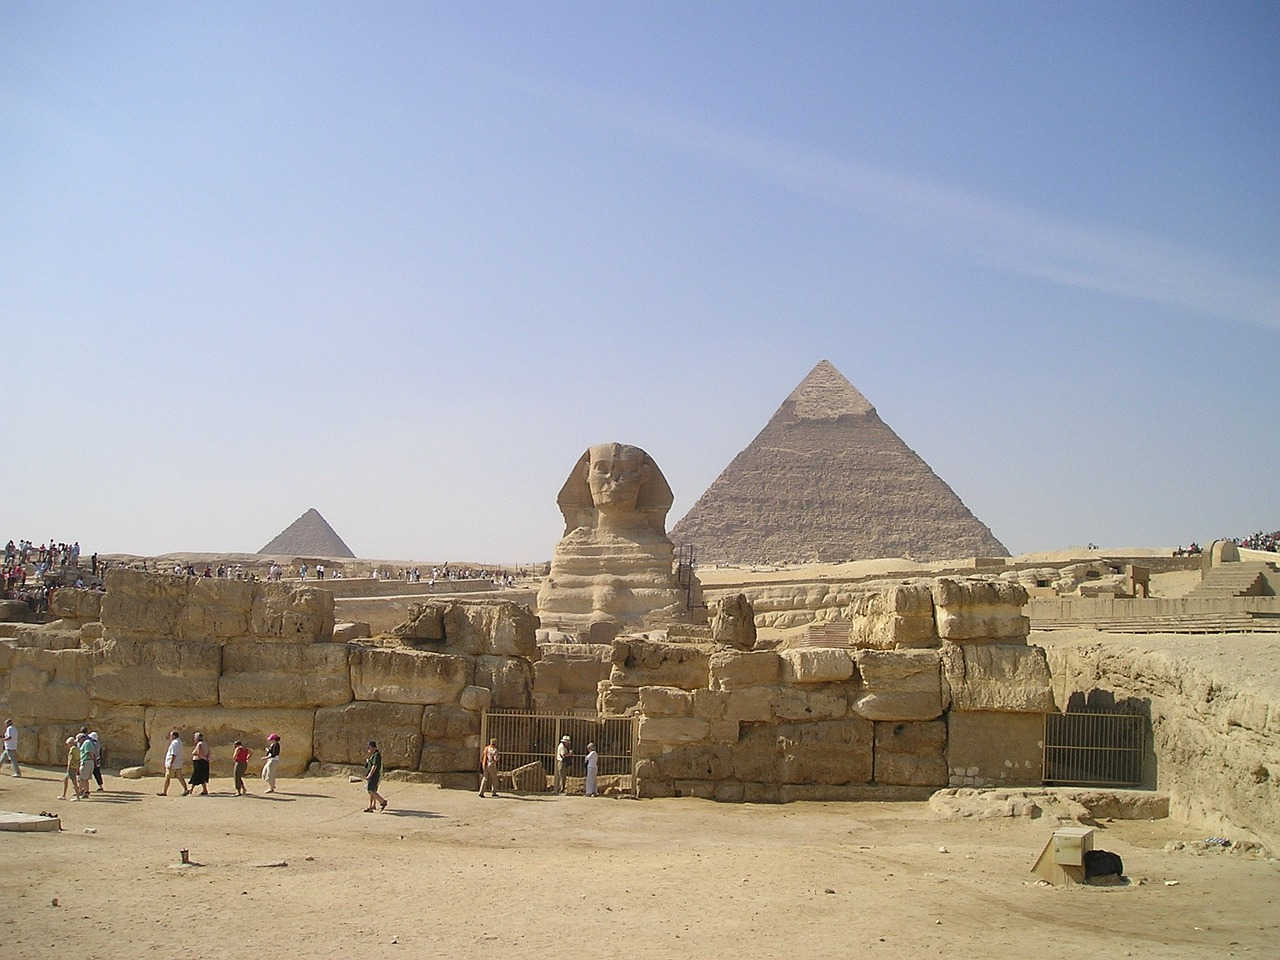 egypt,sphinx,pyramids,egyptians,gizeh,culture,grave,weltwunder,free pictures, free photos, free images, royalty free, free illustrations, public domain